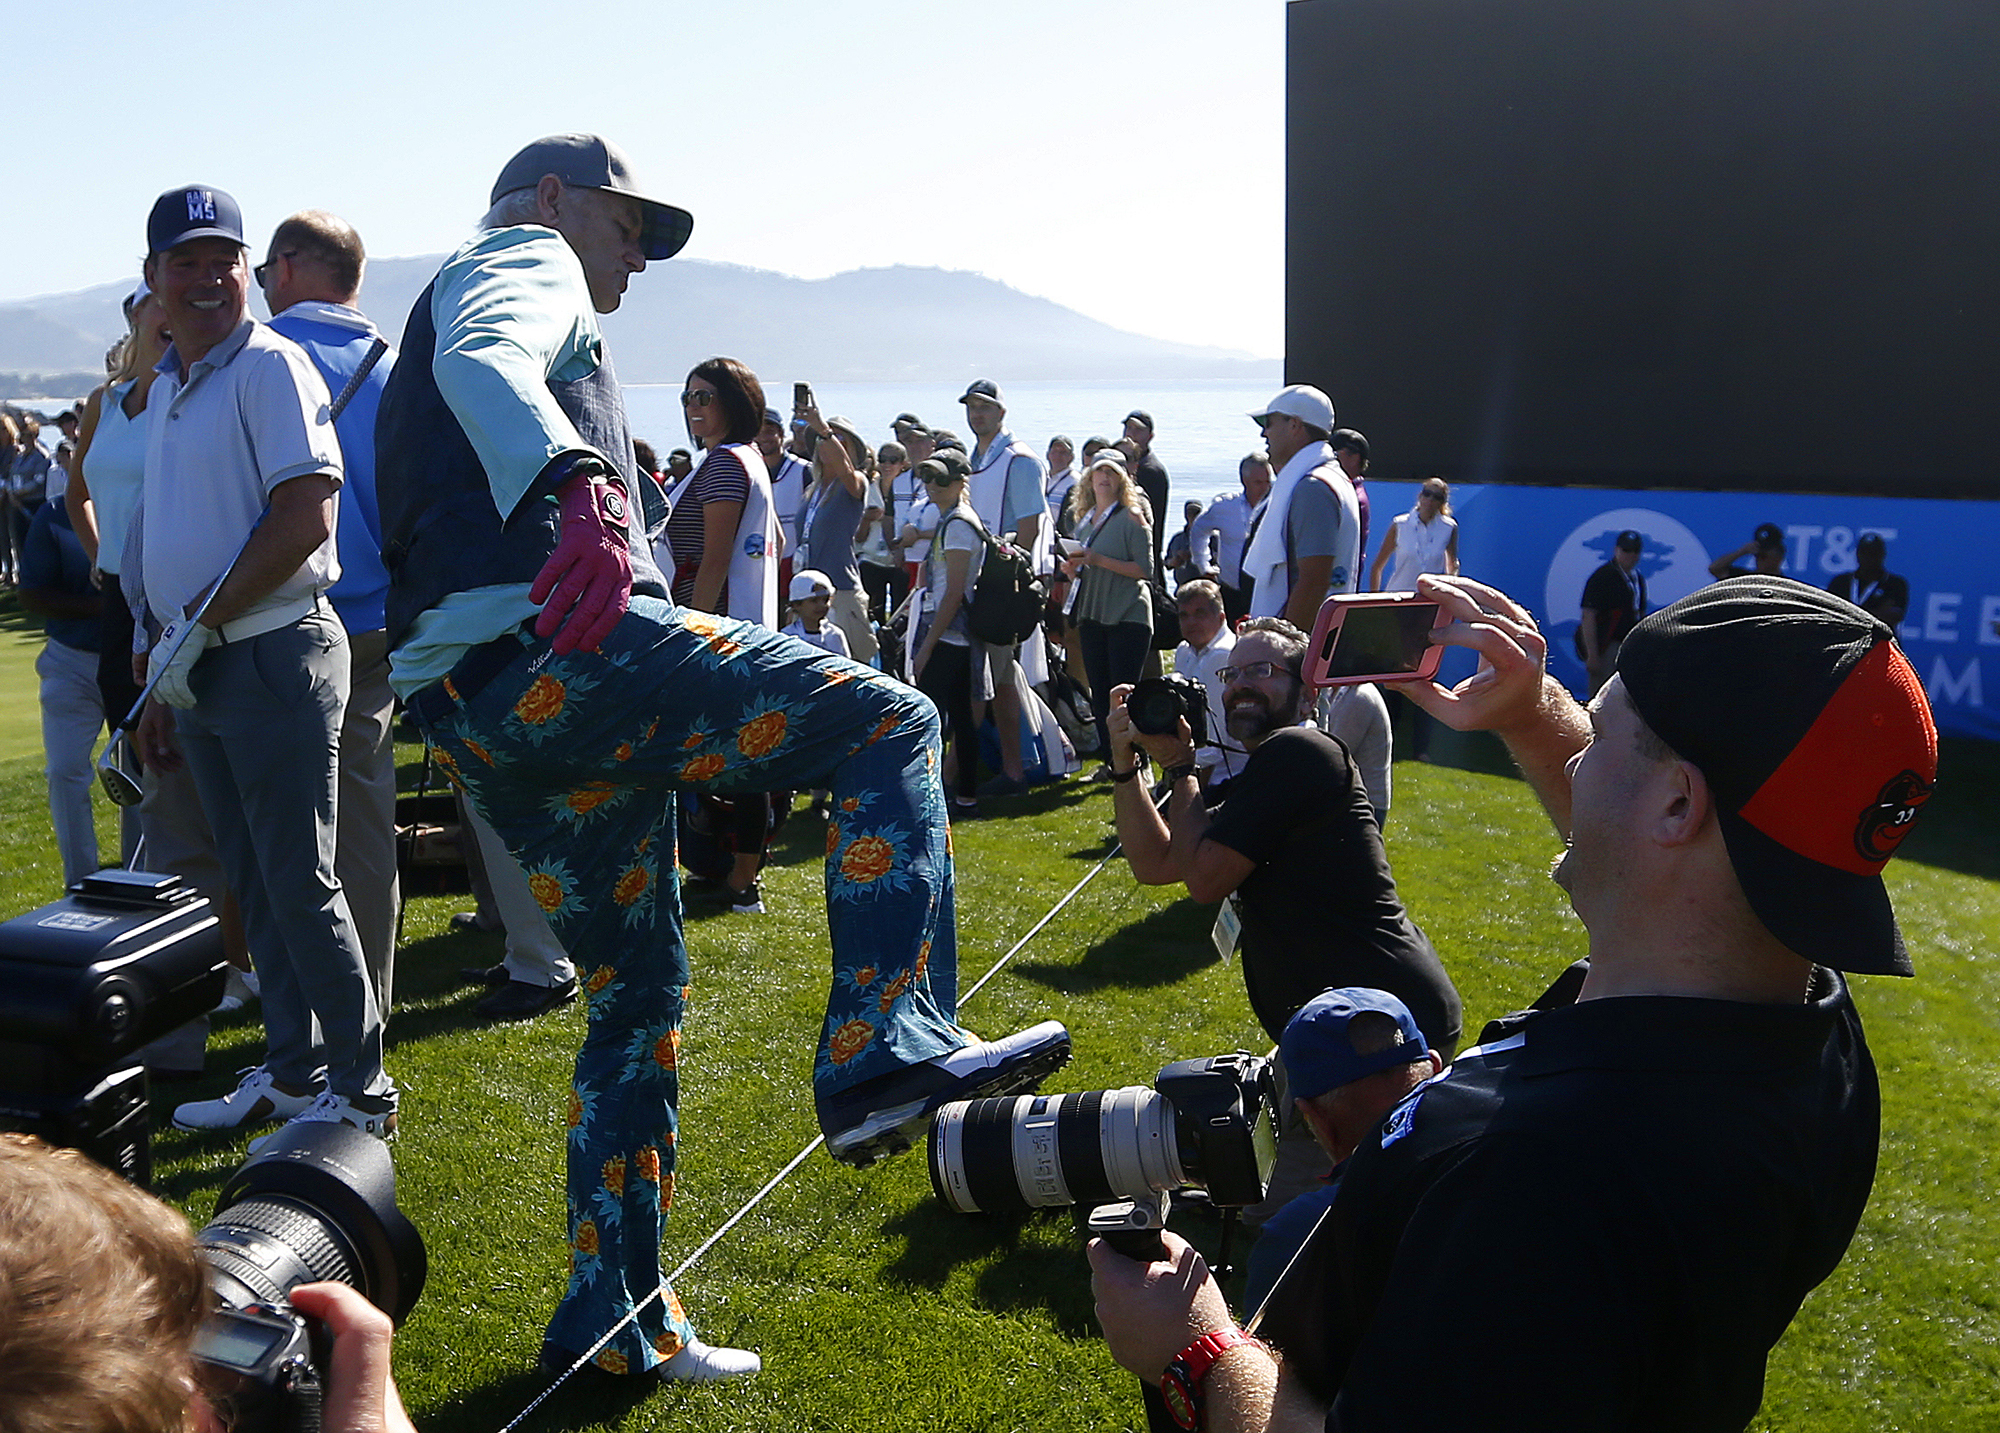 Rory McIlroy five-putts at AT&T Pebble Beach Pro